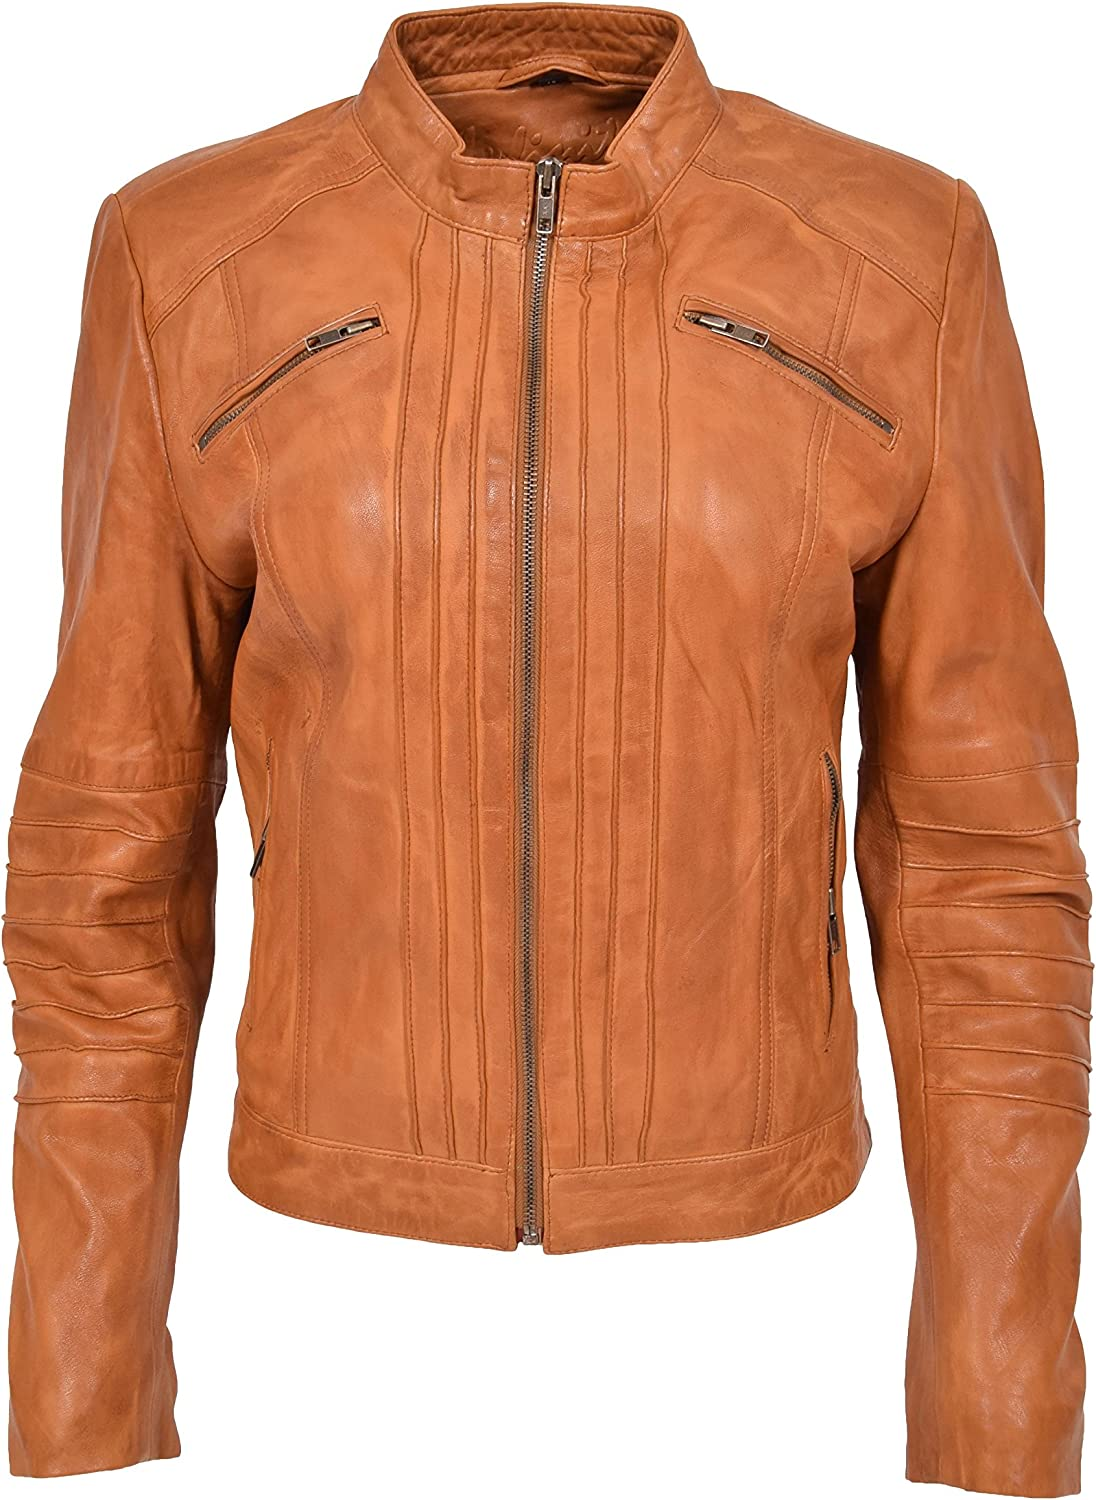 HOL Womens Soft Leather Classic Biker Style Casual Jacket Alice Tan